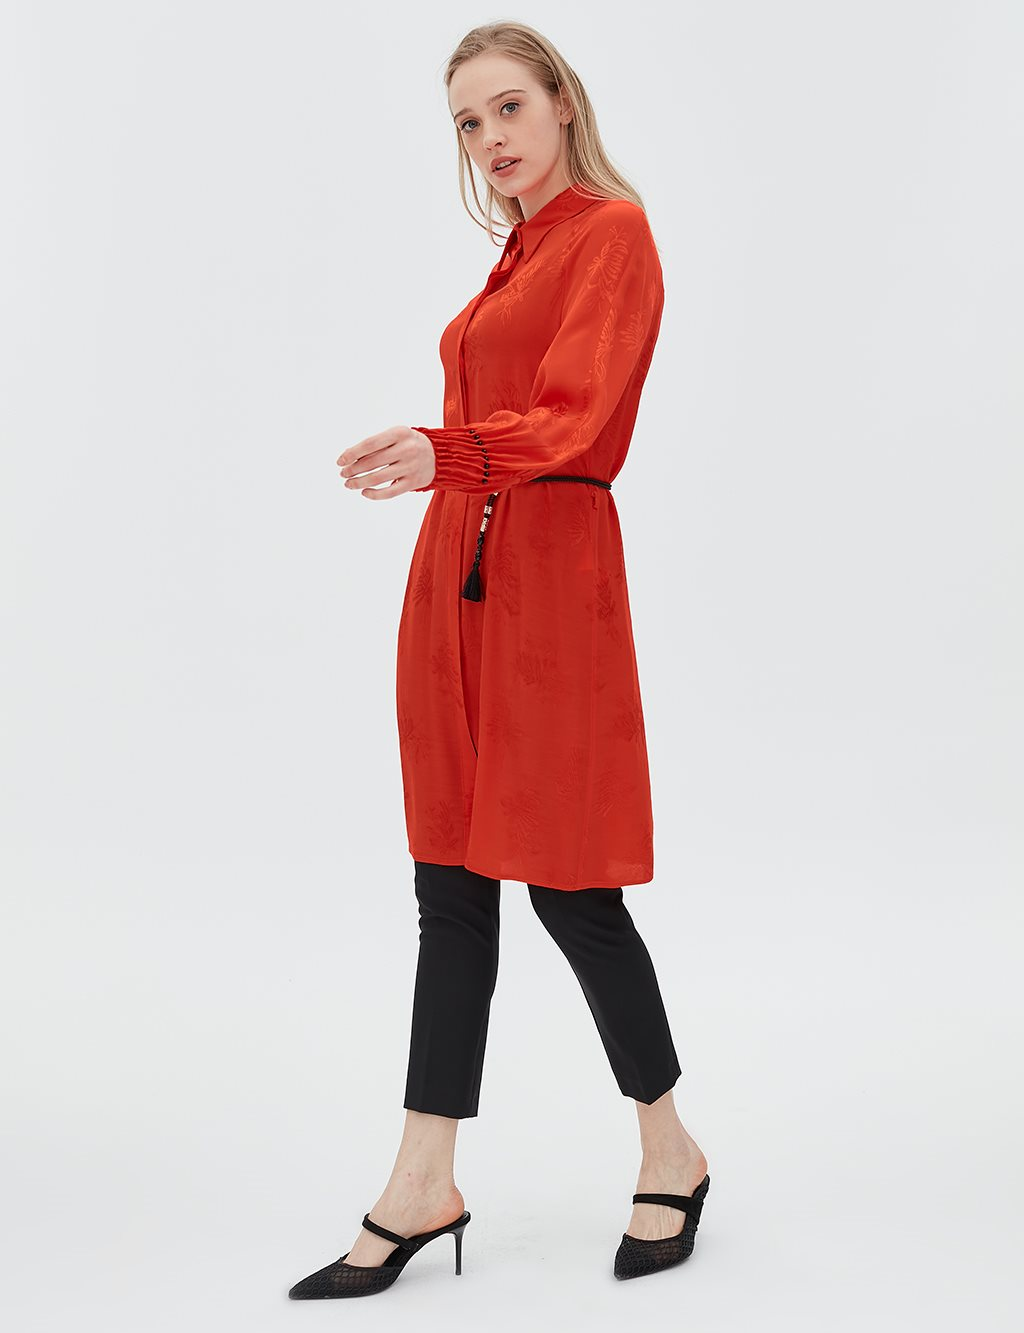 Leaf Patterned Ruched Sleeve Tunic B20 21048 Red